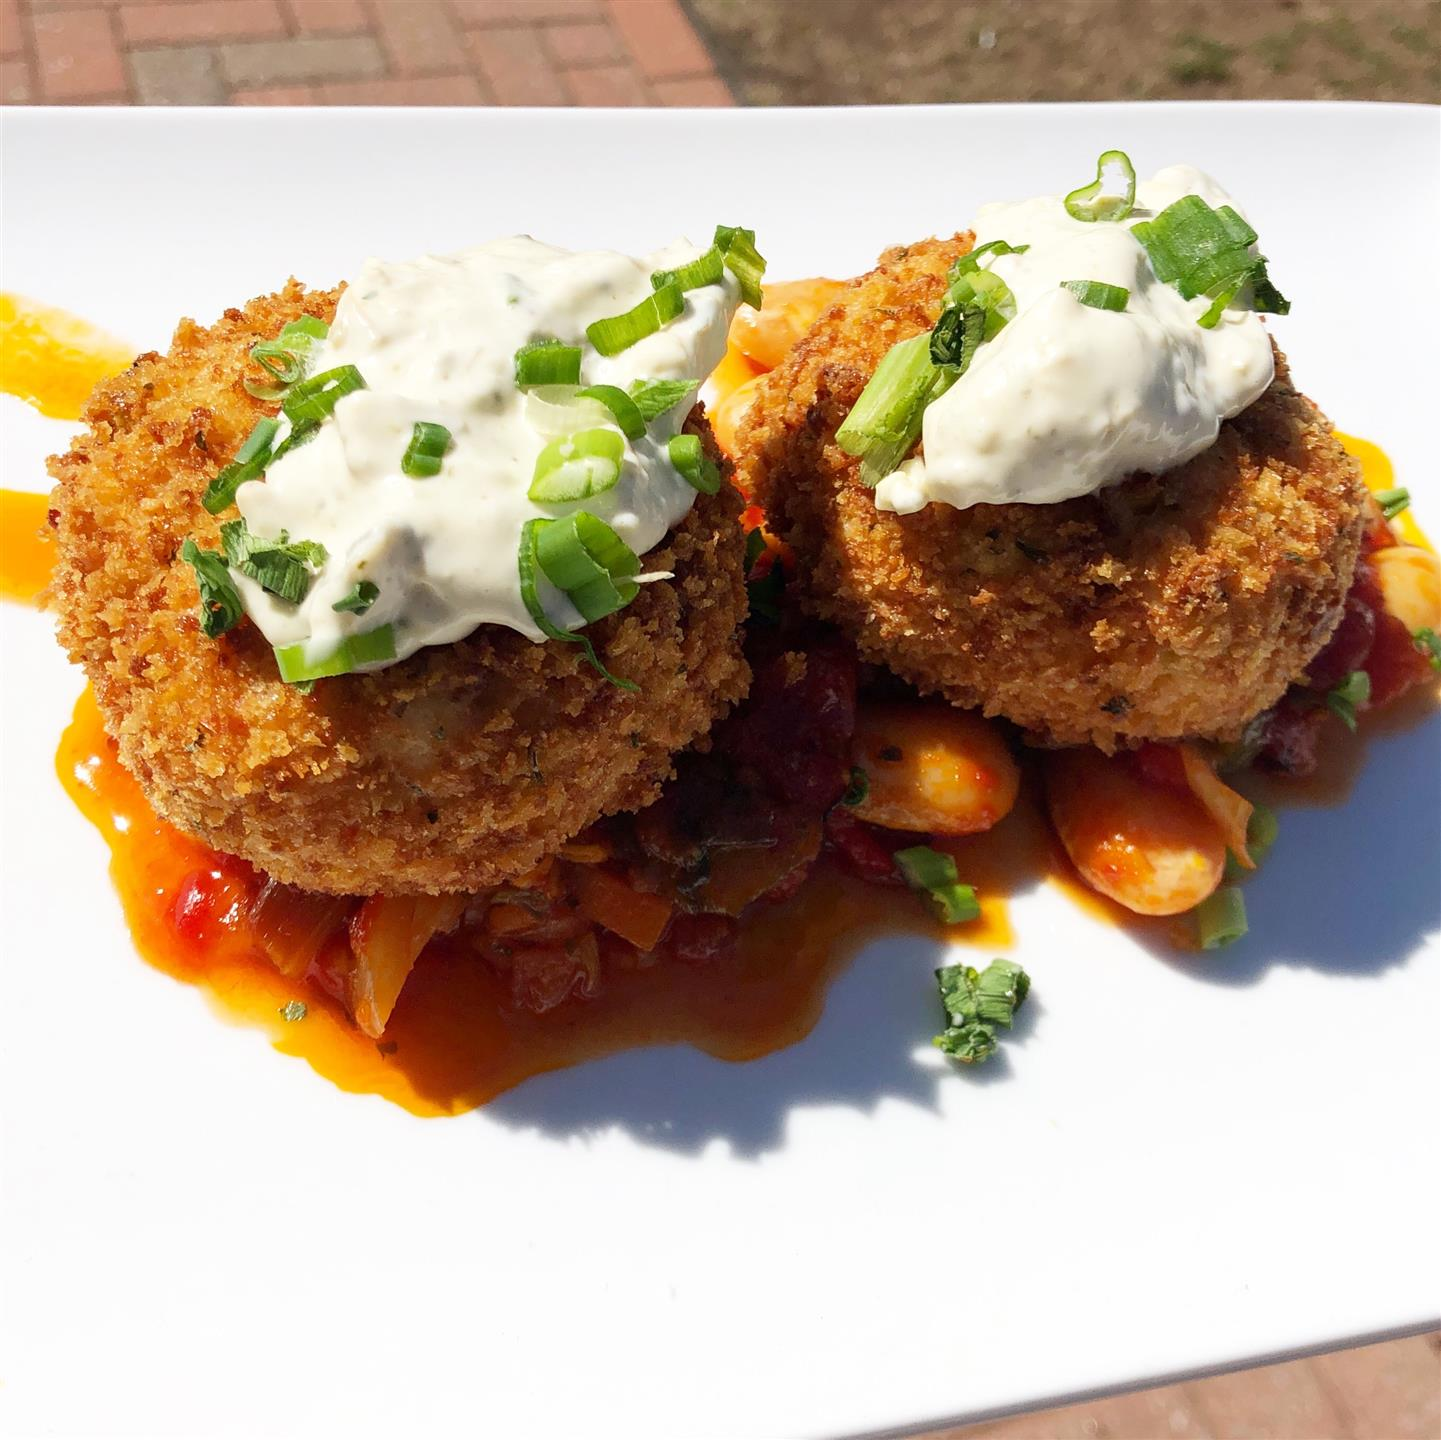 two crab cakes on a bed of veggies